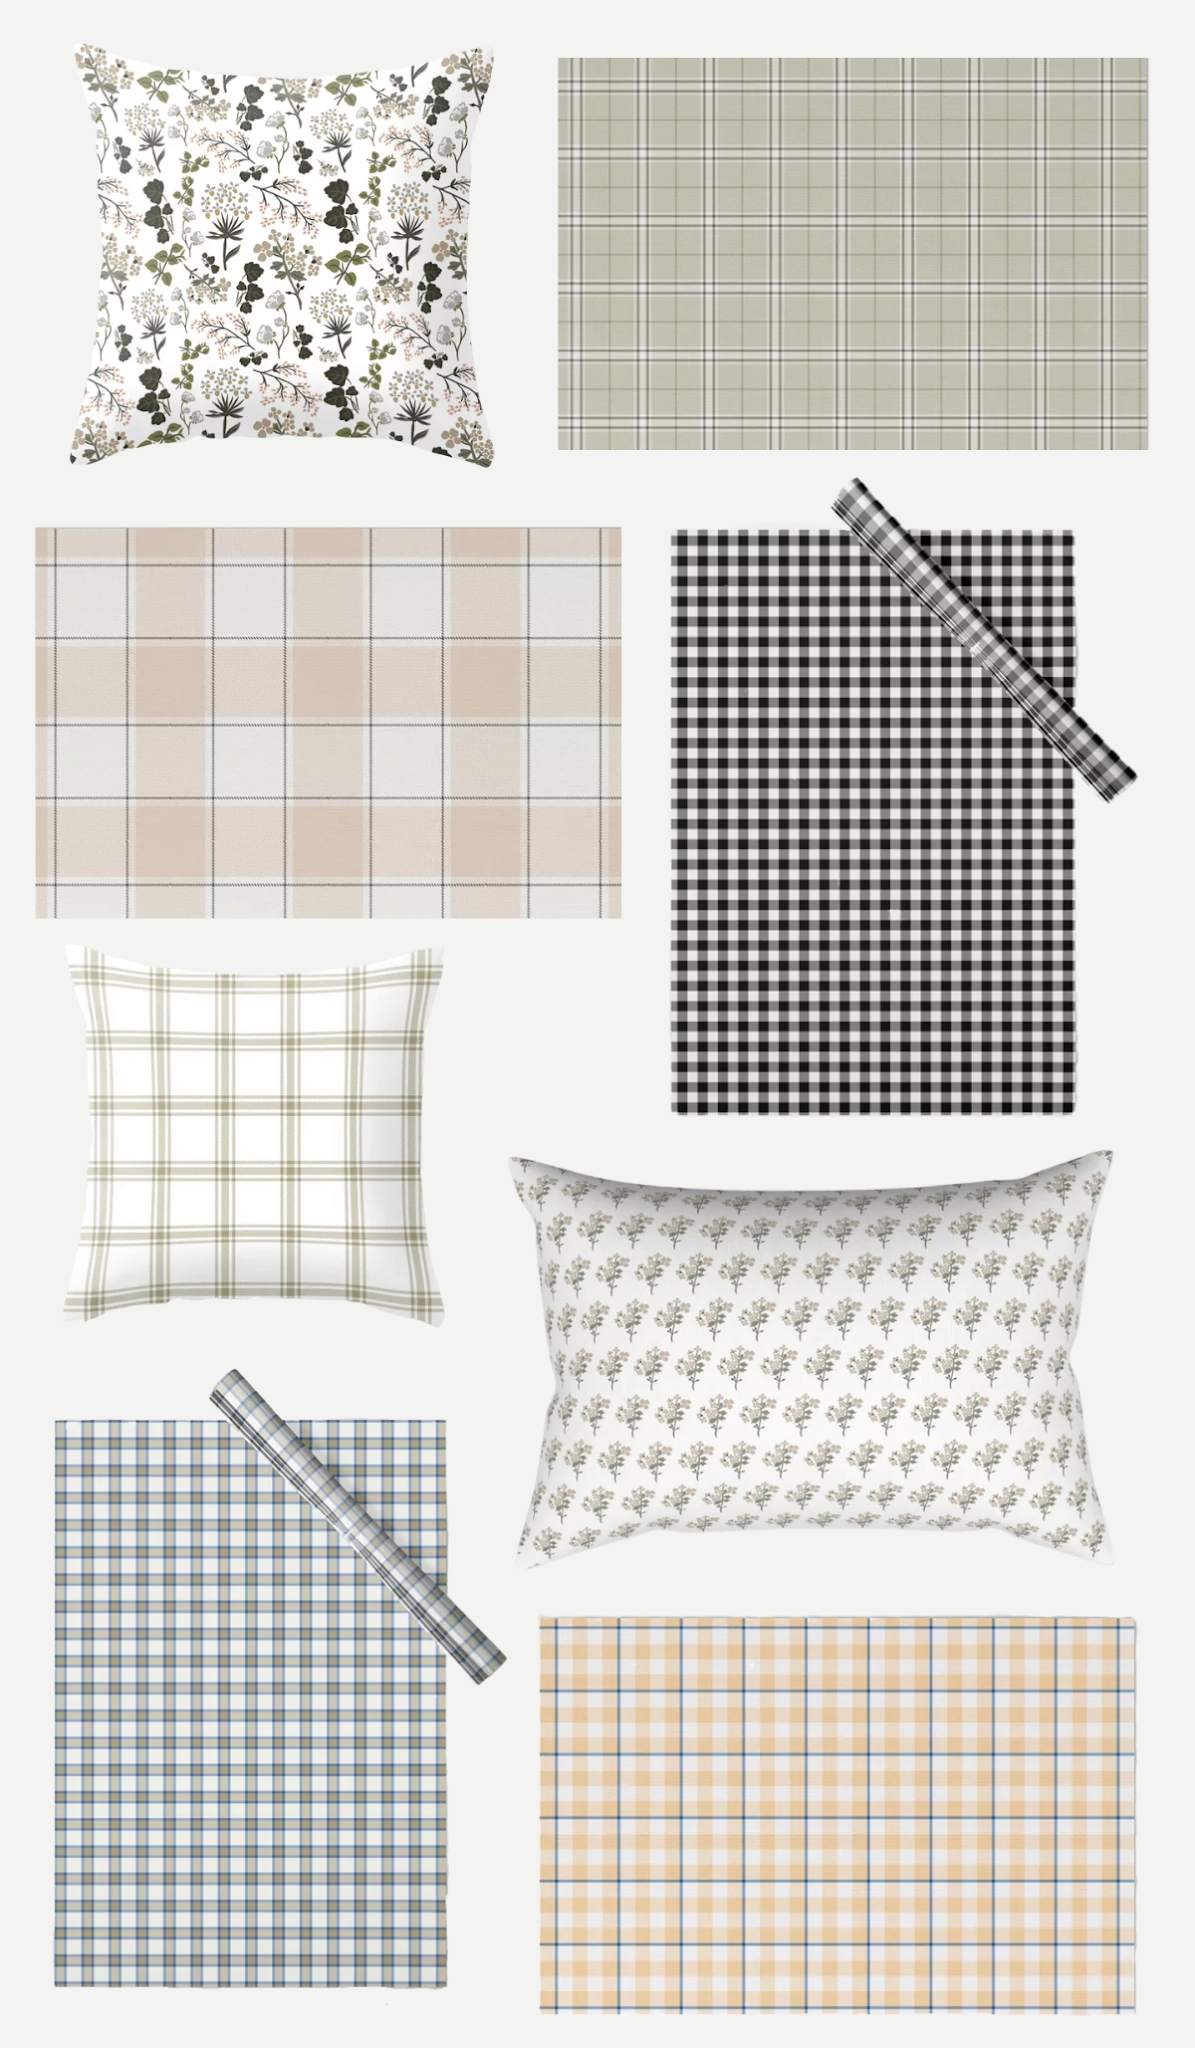 spring collection home decor, spring floral gingham plaid decor